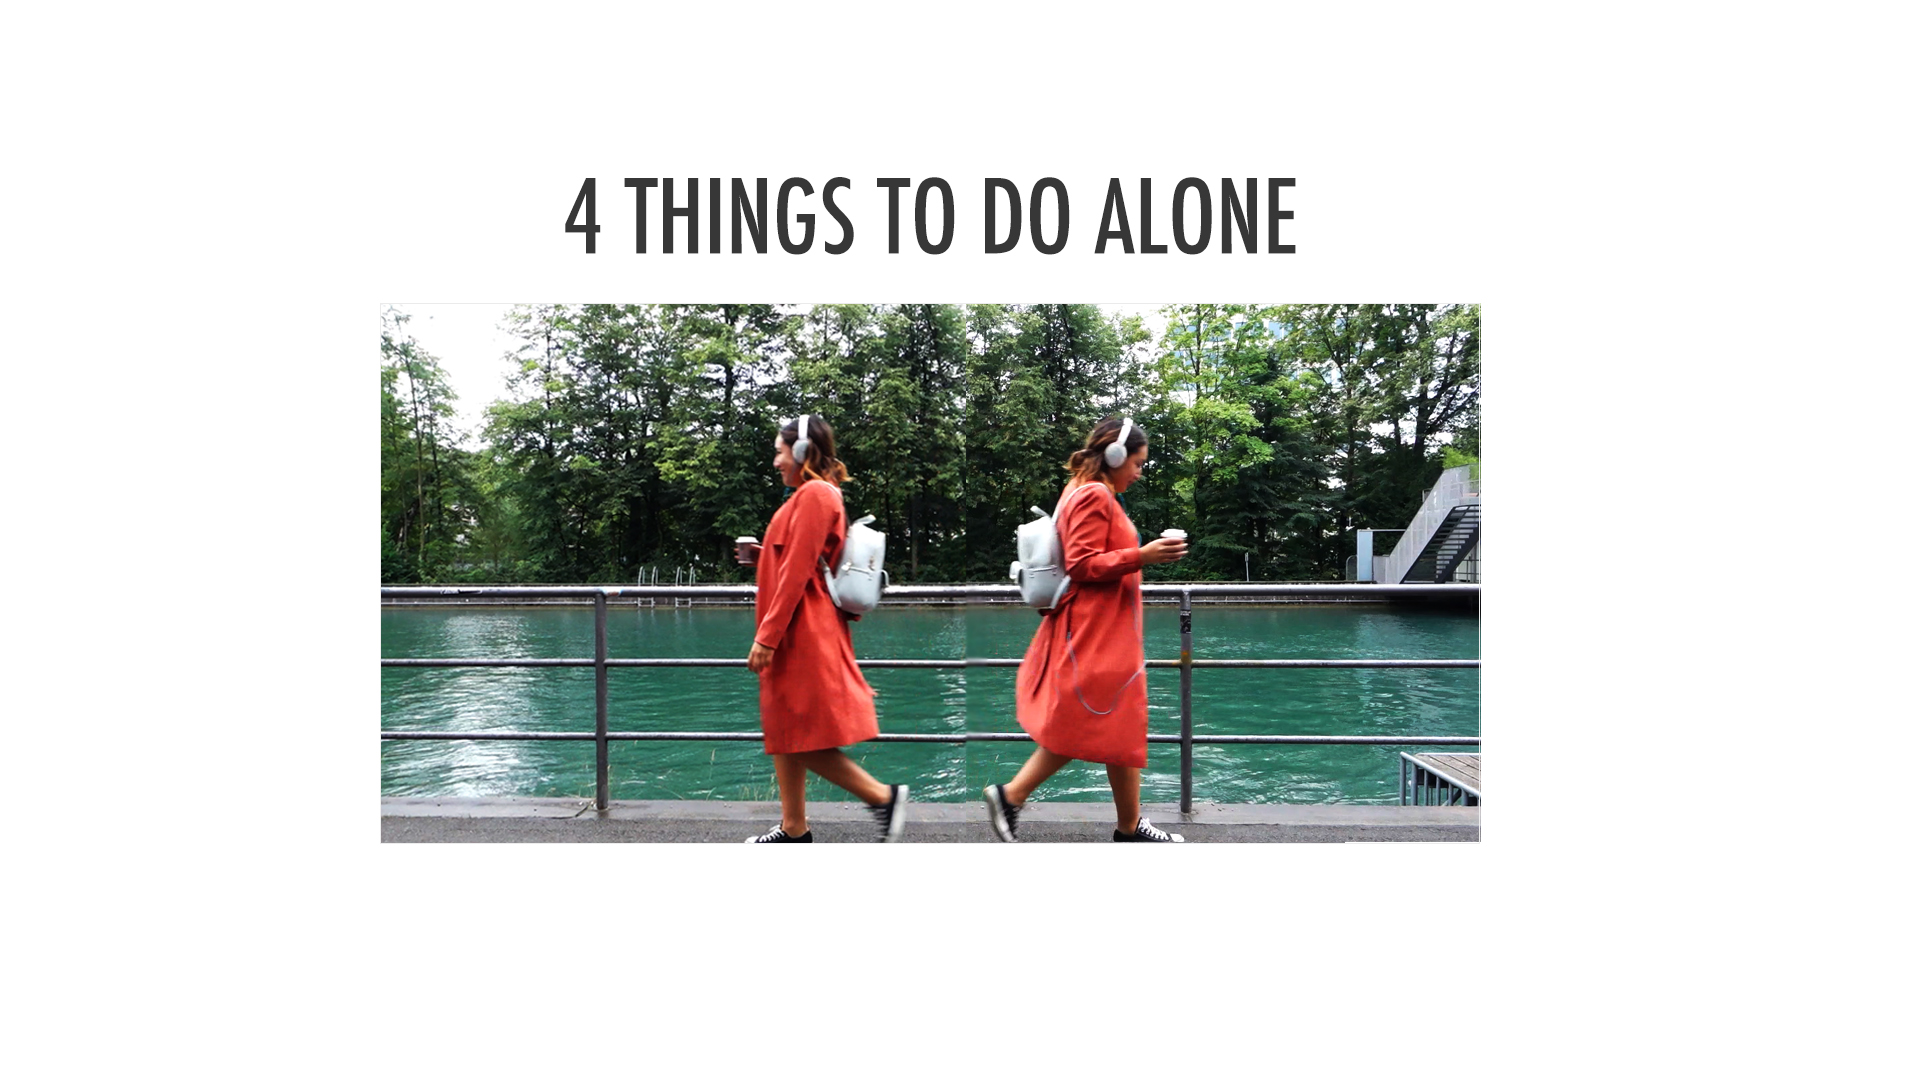 4 things to do alone